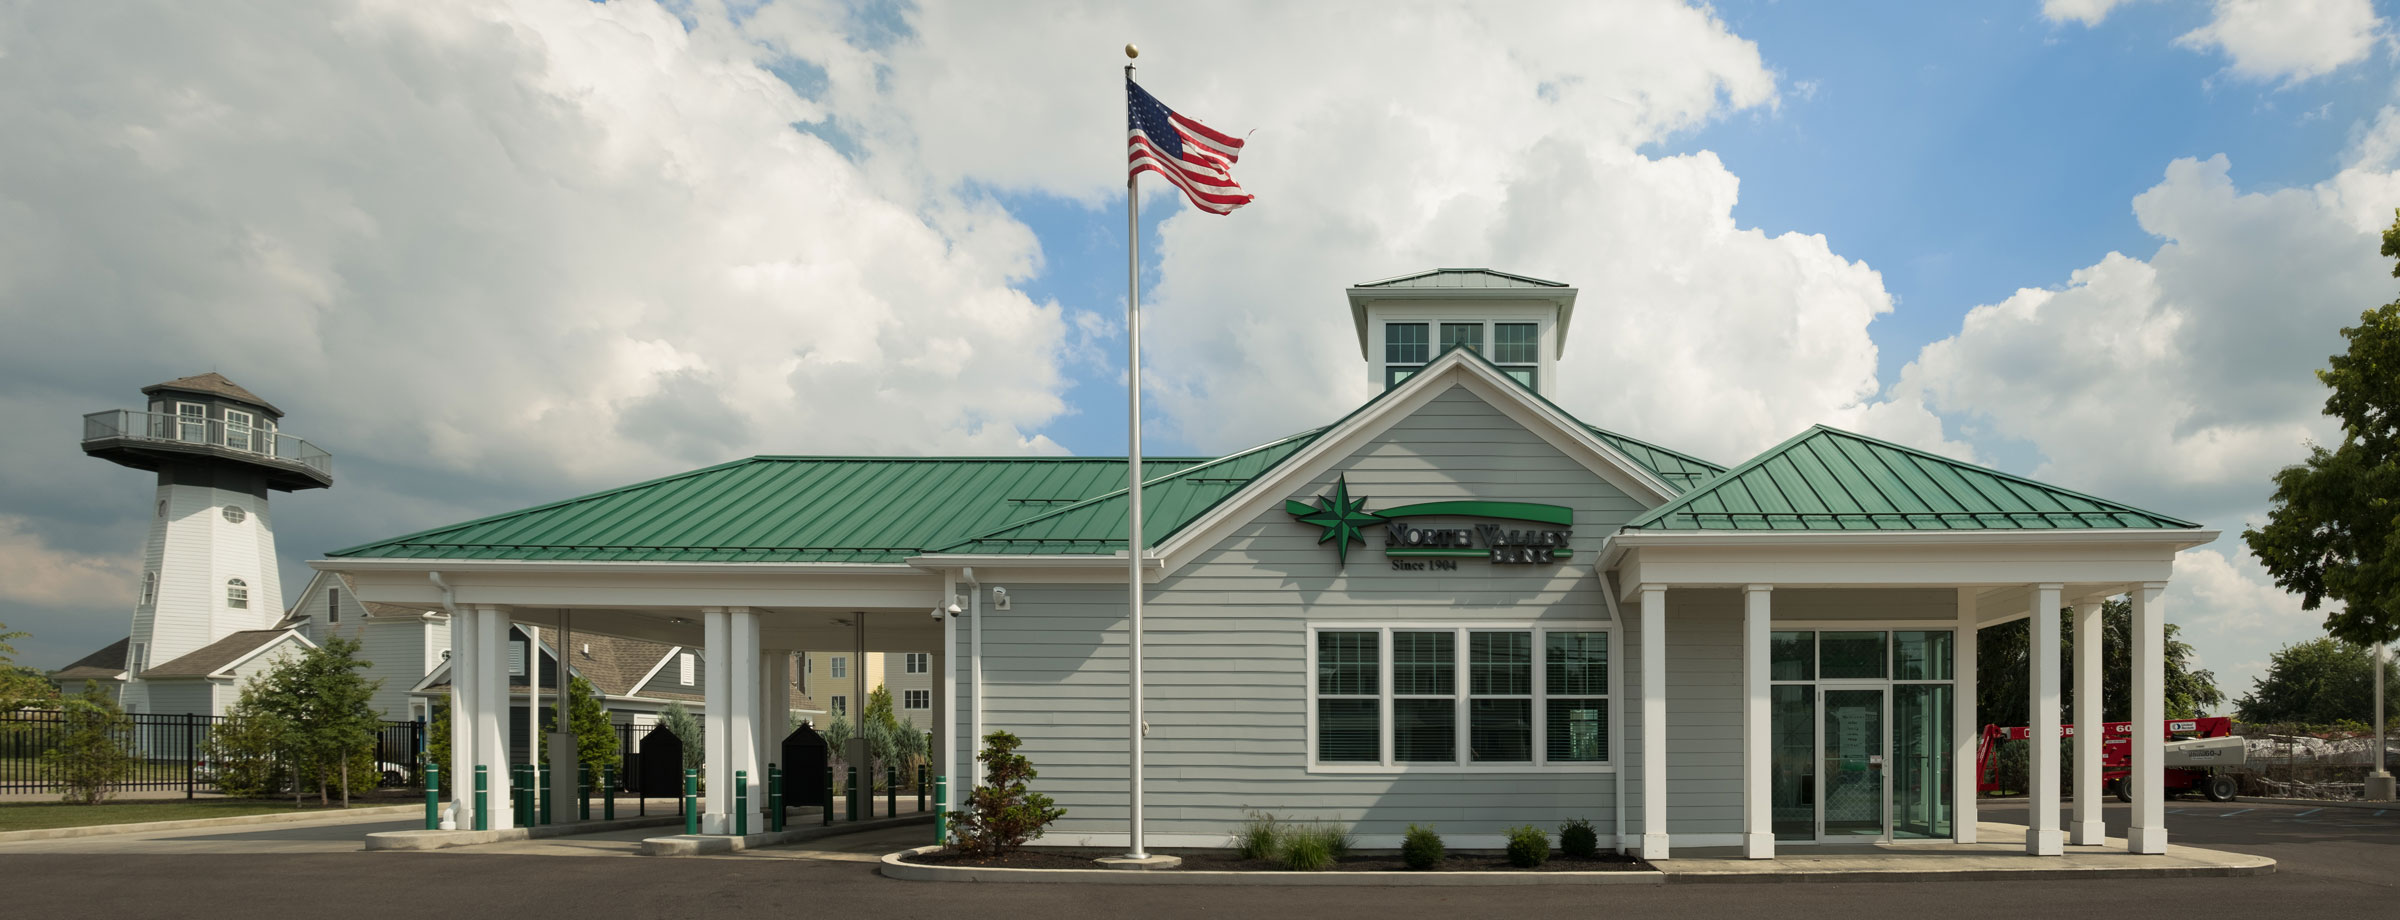 North-Valley-Bank-Buckeye-Lake-Office